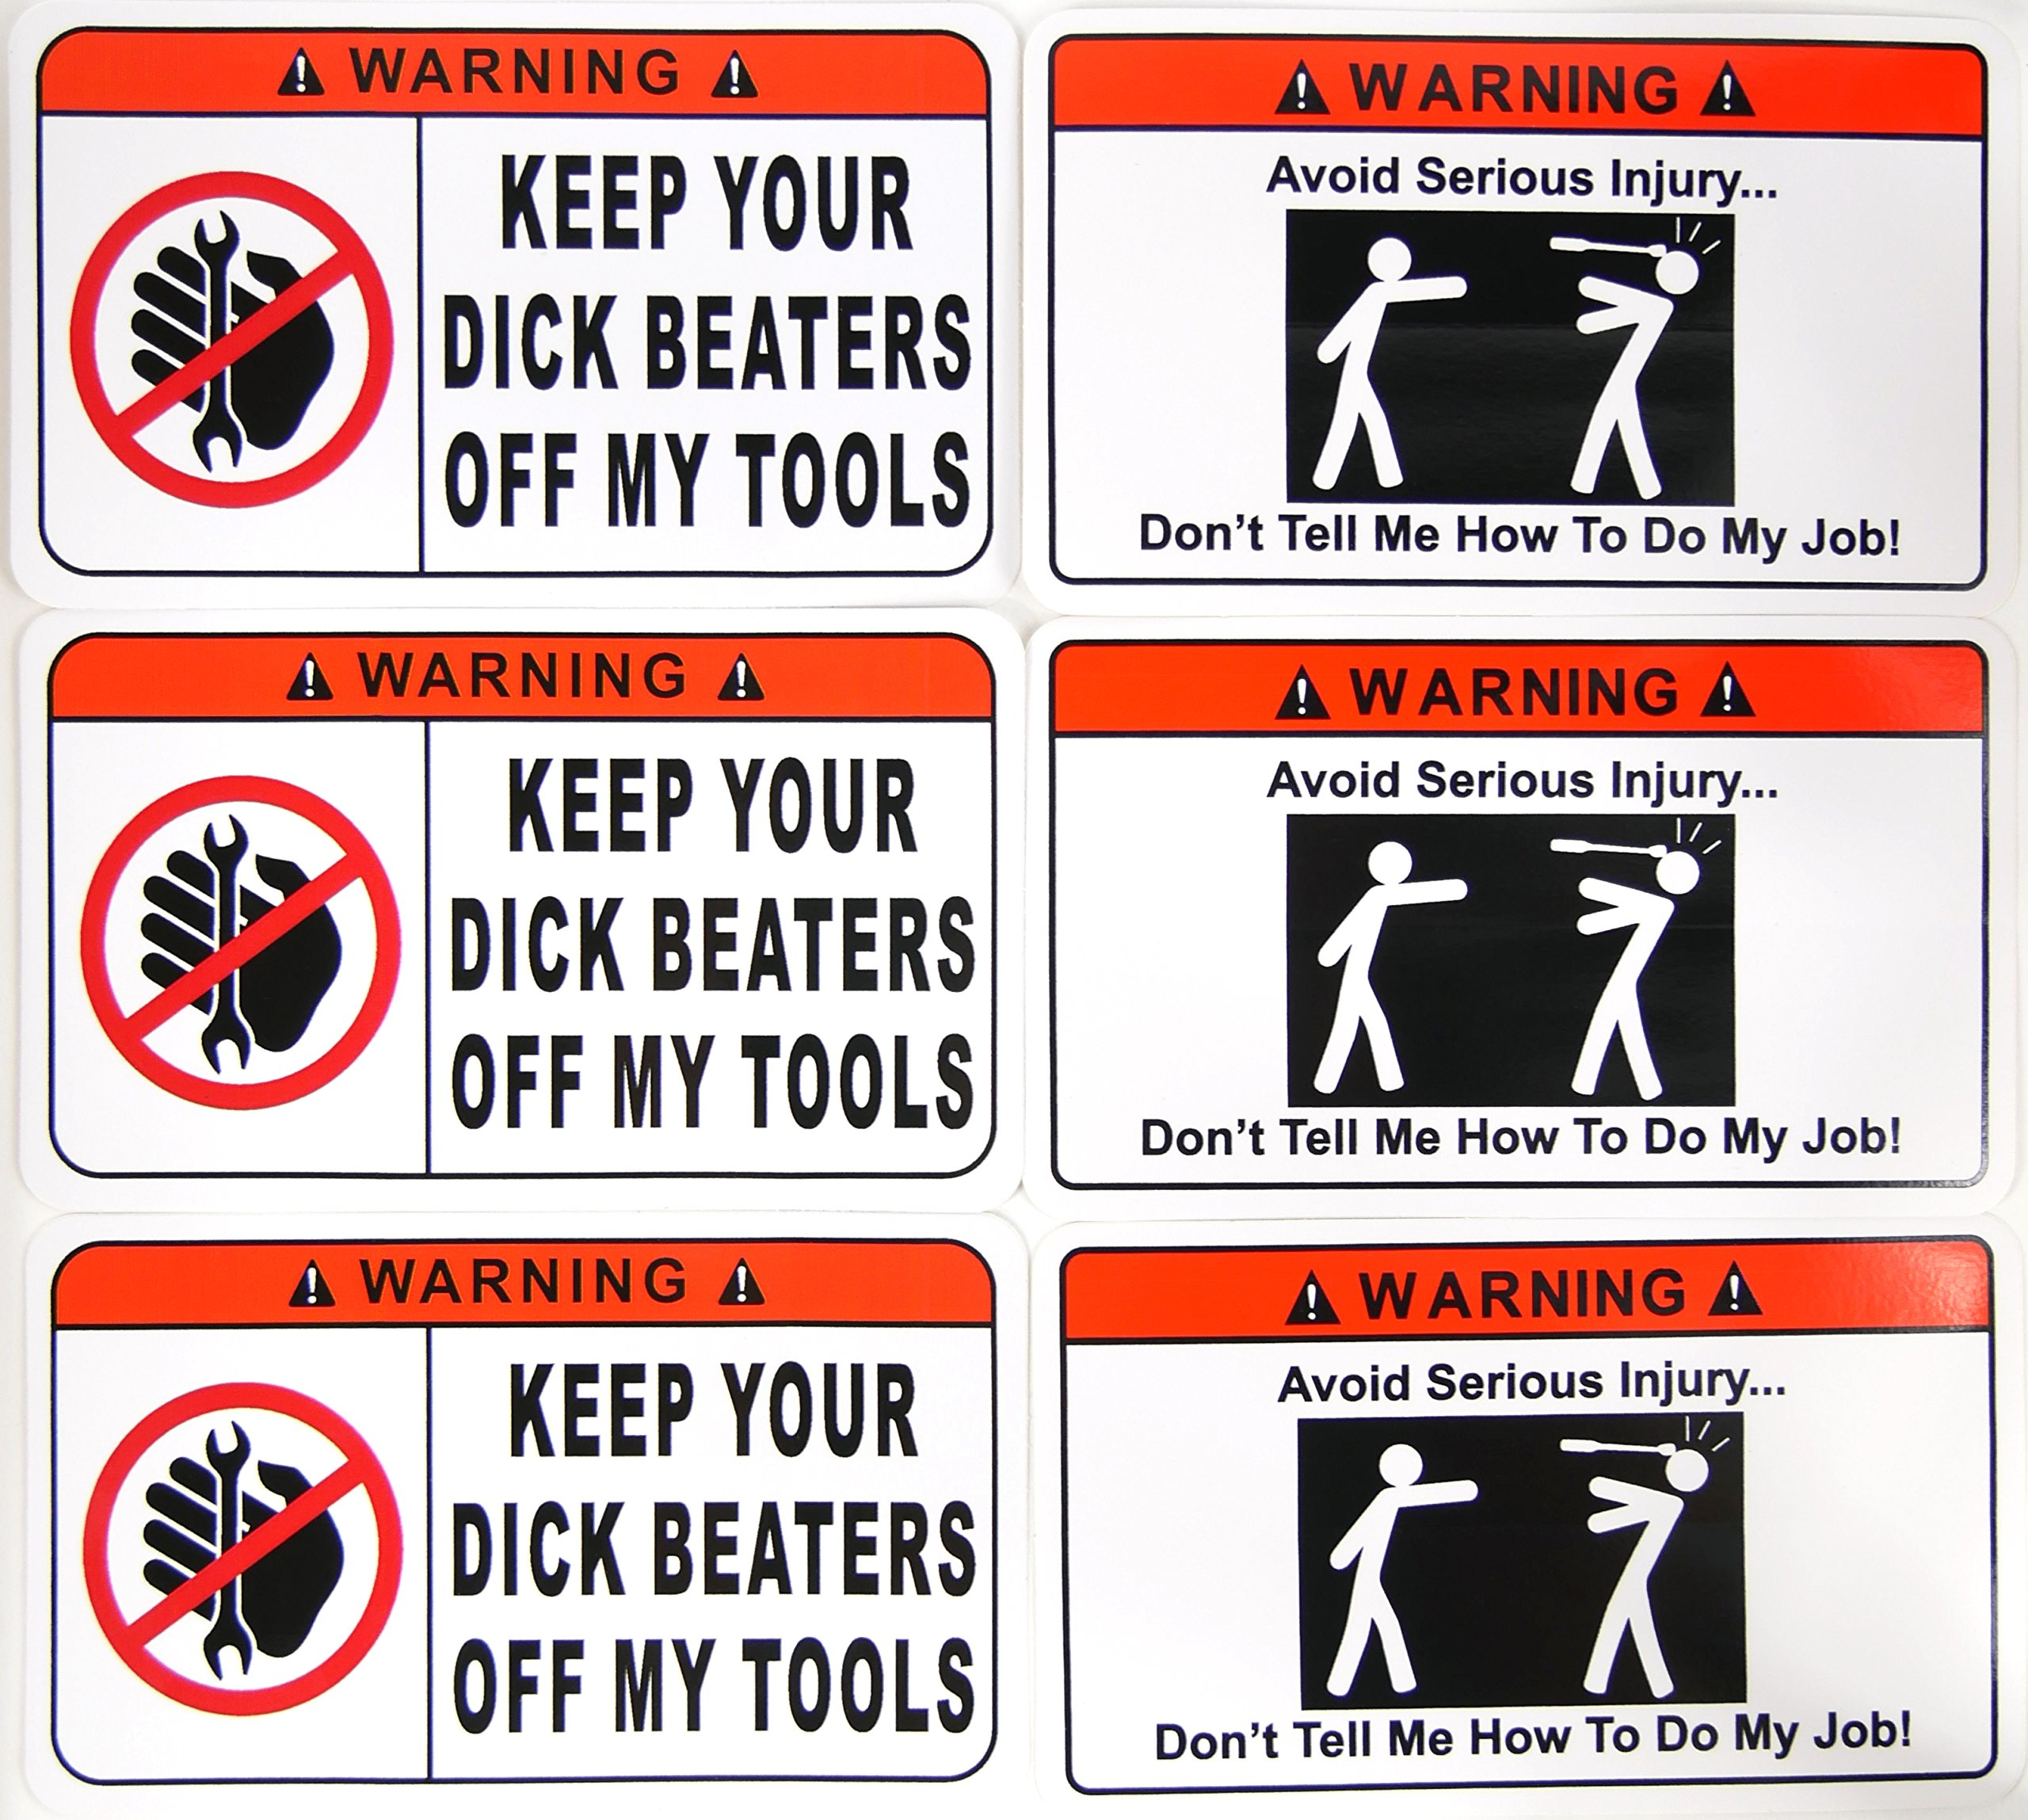 STICKER 6 PACK (3) Warning Keep Your Dick Beaters Off My Tools (3) Warning Don't Tell Me How To Do My Job Vinyl Hard Hat Toolbox Tool Chest Work Bumper Decals